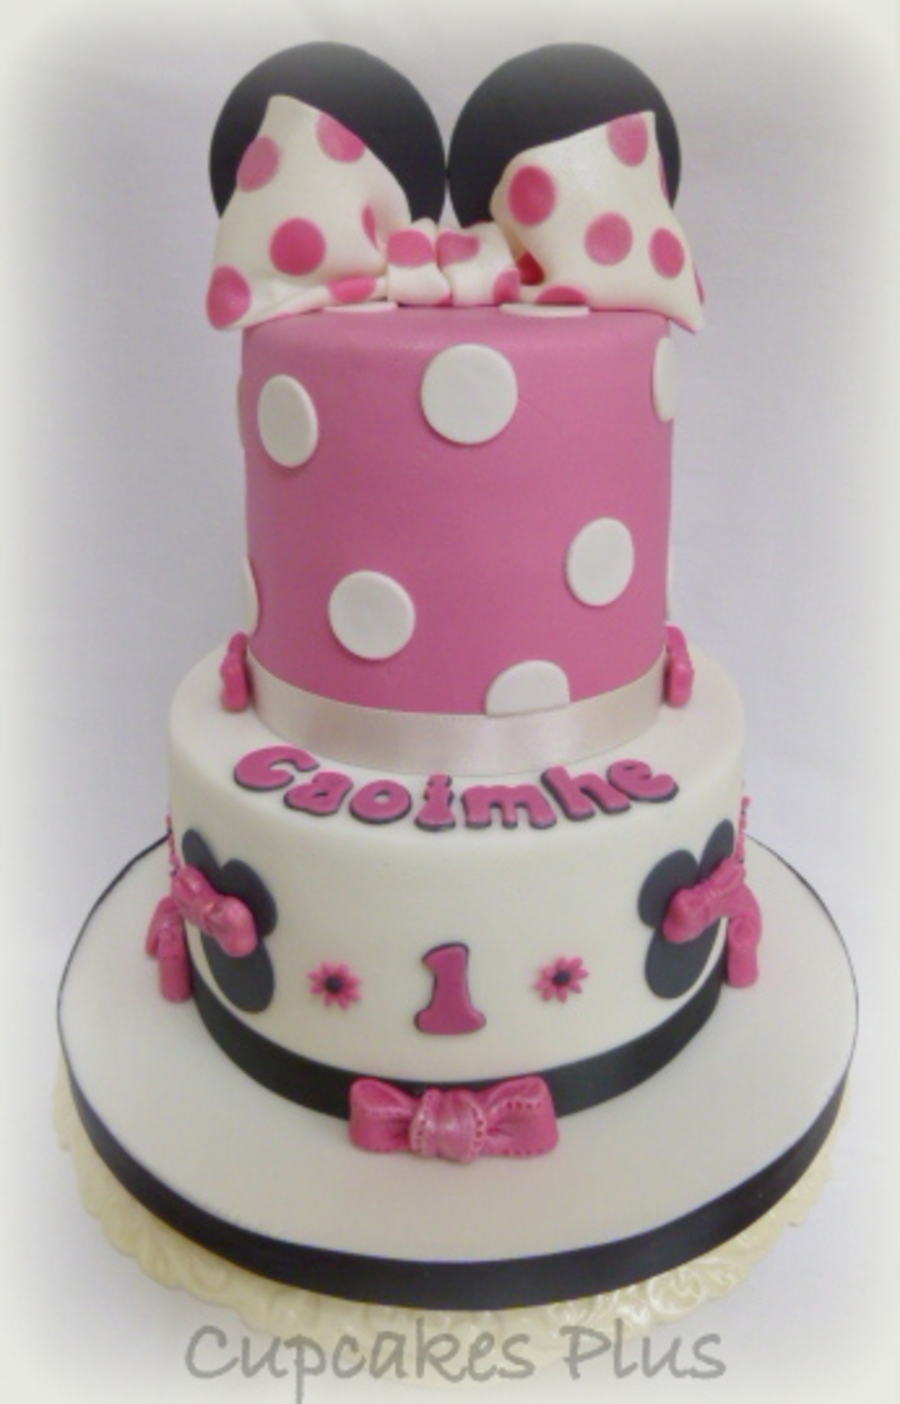 Minnie Mouse Themed Cake 6 Vanilla Sponge With 4 Chocolate Cake X on Cake Central